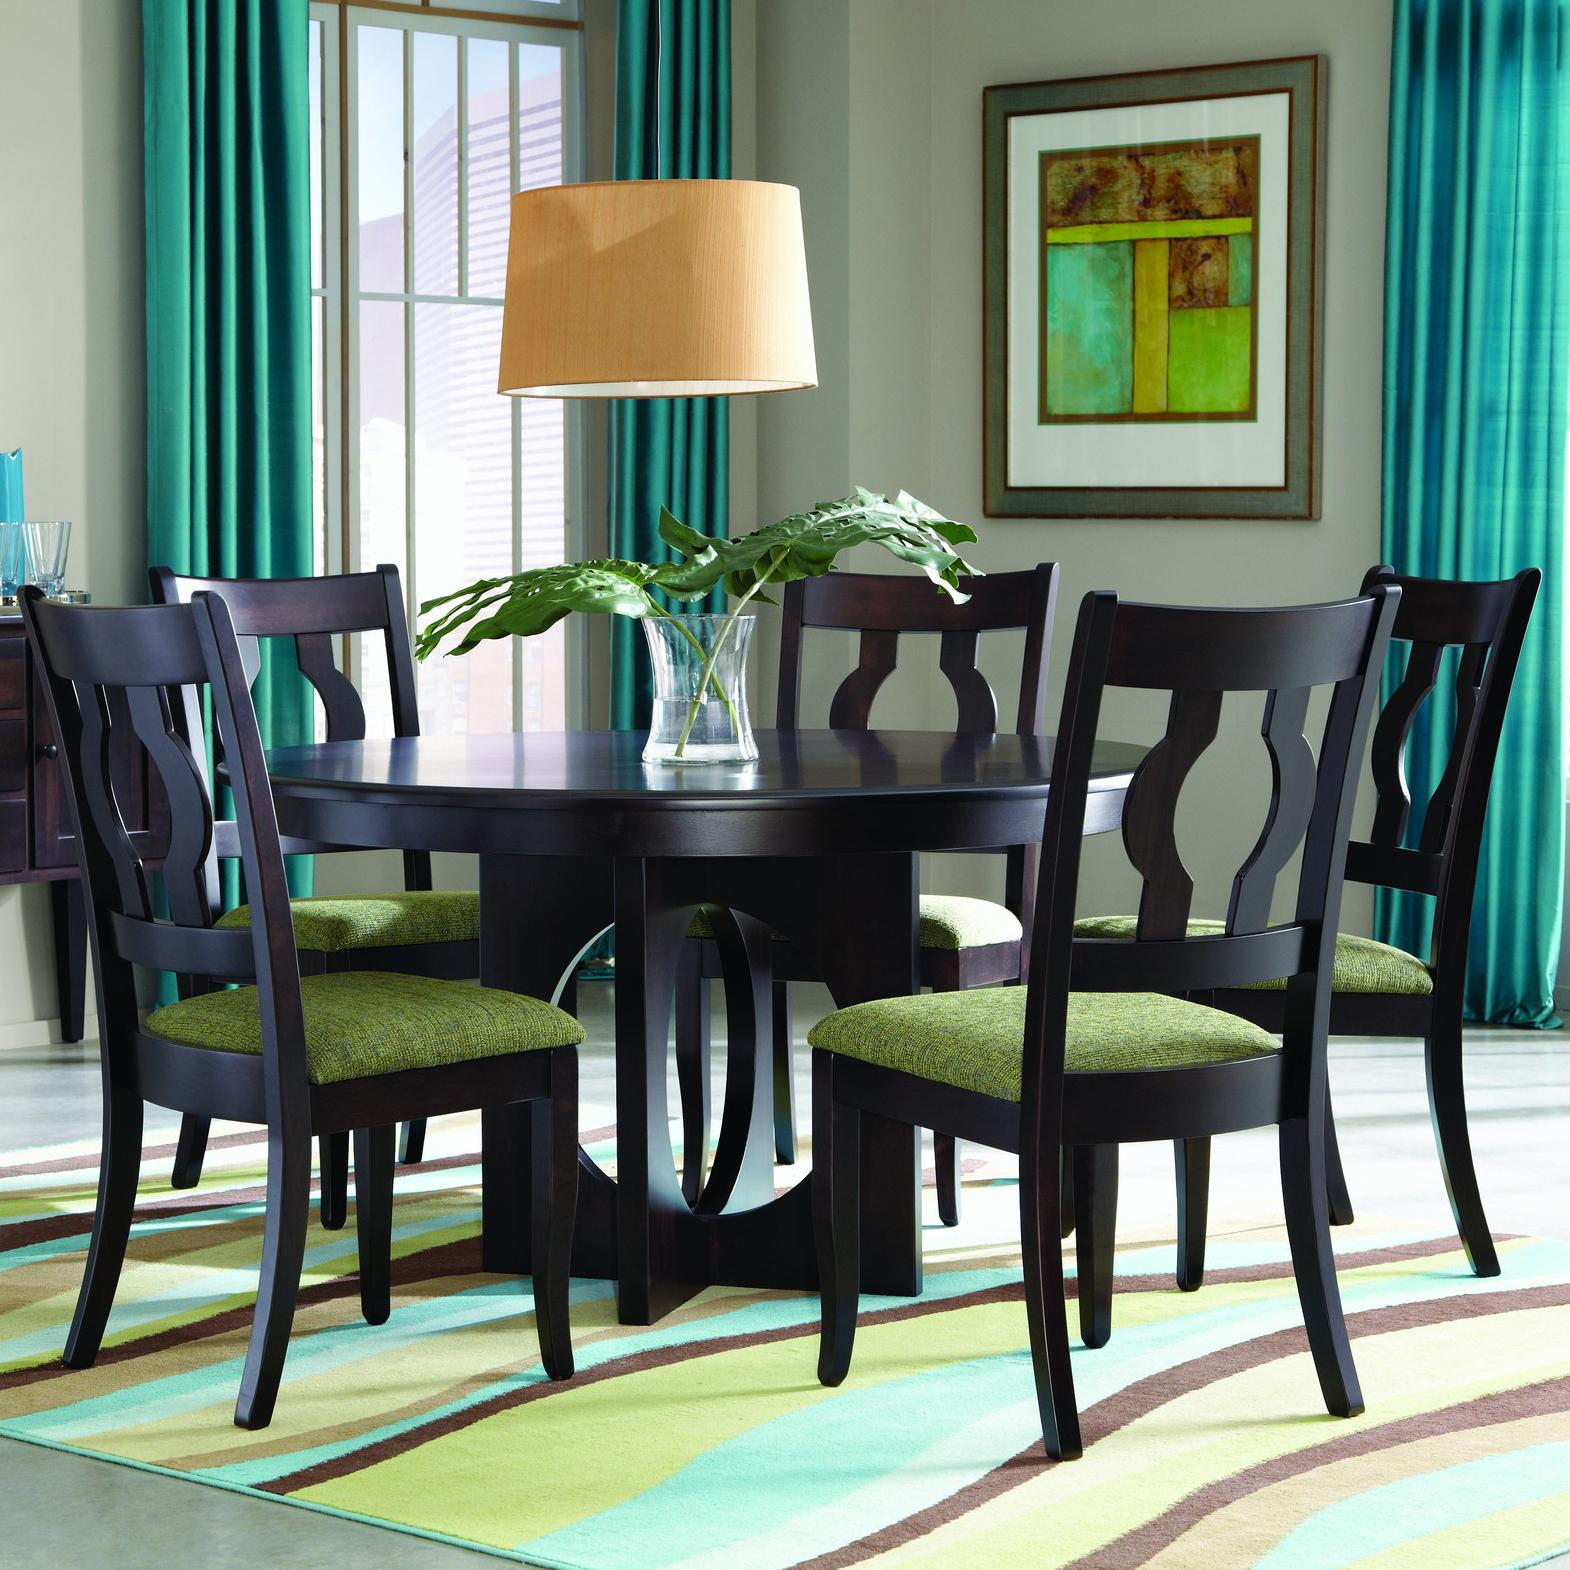 Single Metro Customizable 5 Pc. Table Set by Palettes by Winesburg at Dinette Depot